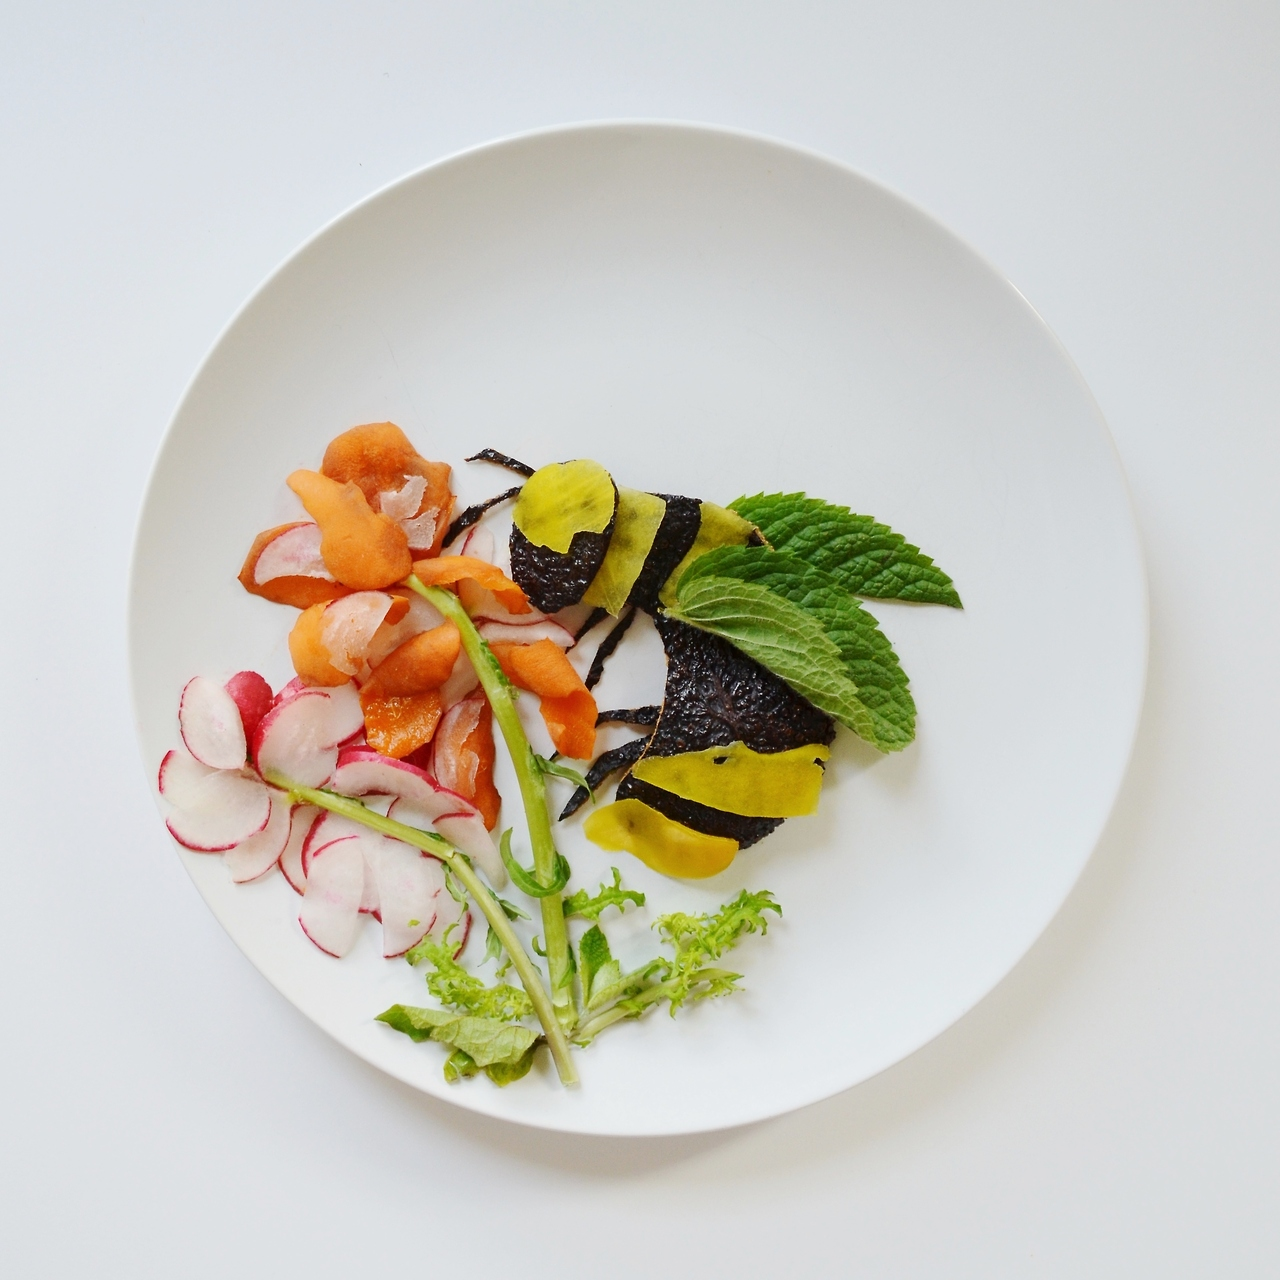 Artist promotes healthy eating through food art lost in for Artistic cuisine menu